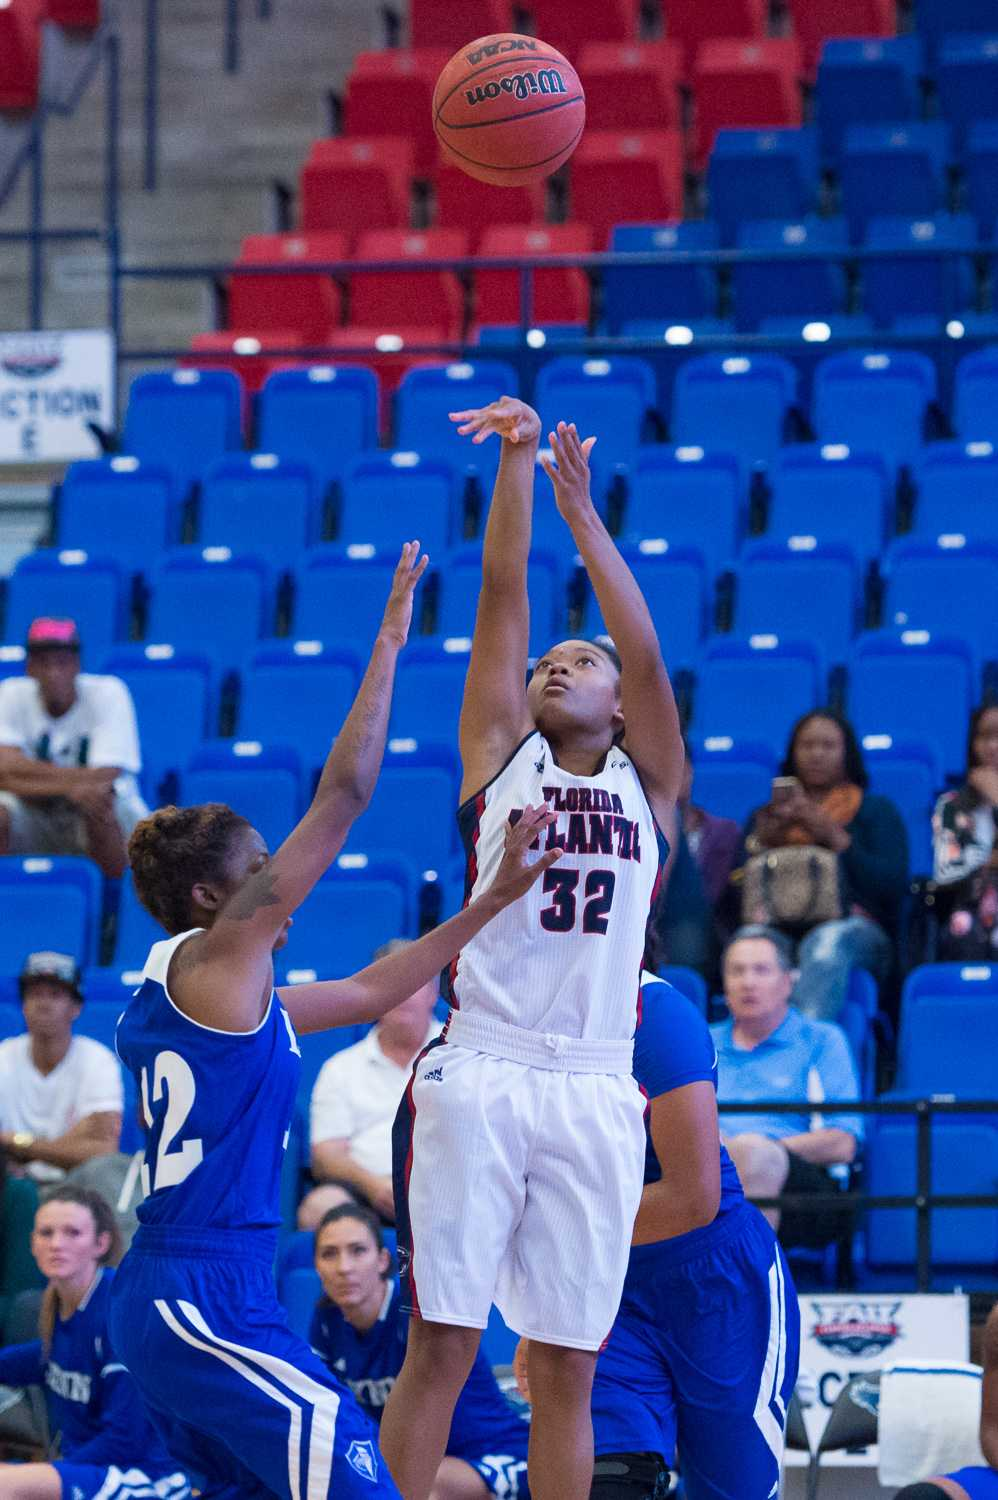 Owl guard Malia Kency takes a successful jump shot, bringing the score to 10-17 FAU early in the game.